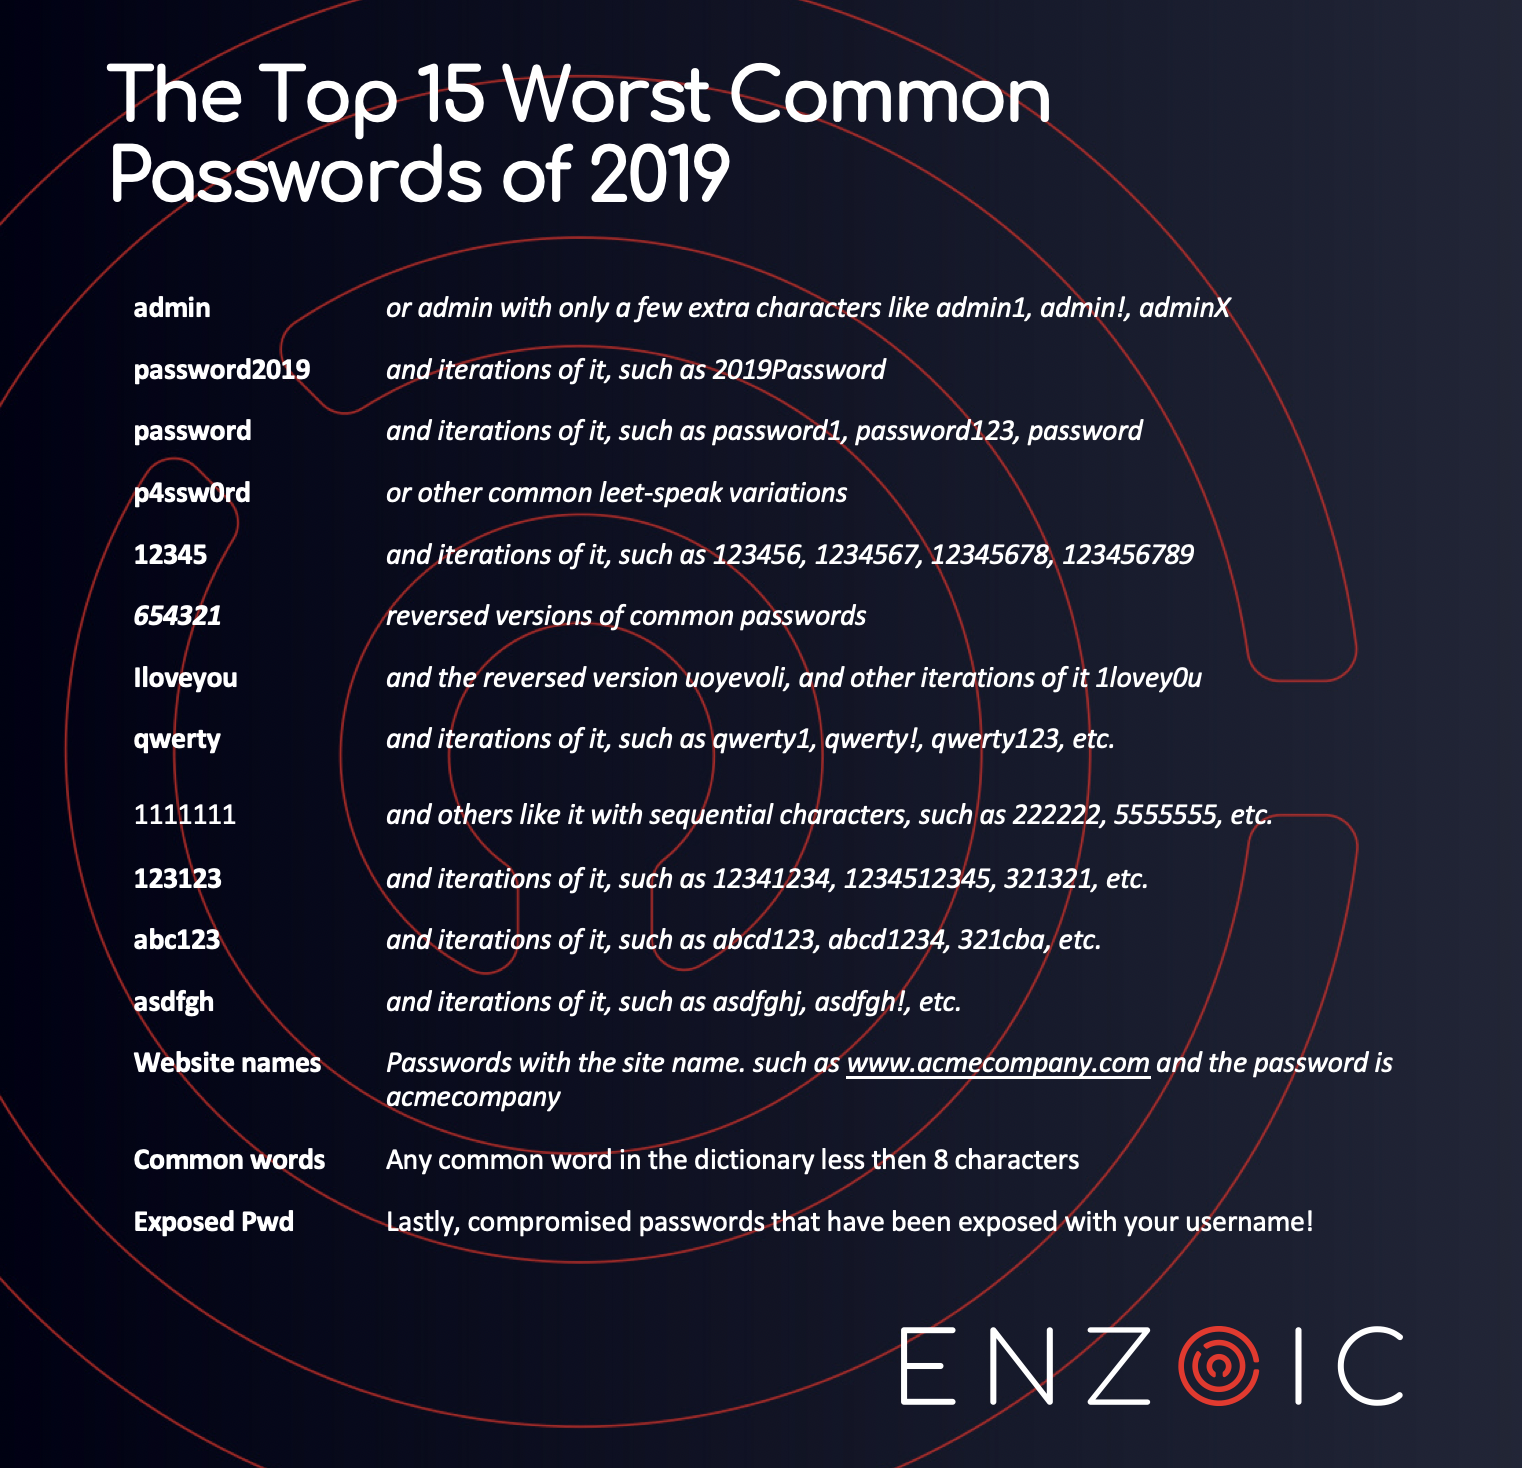 Enzoic's Top 15 Worst Common Passwords of 2019: https://www.enzoic.com/the-top-15-worst-passwords-of-2019/